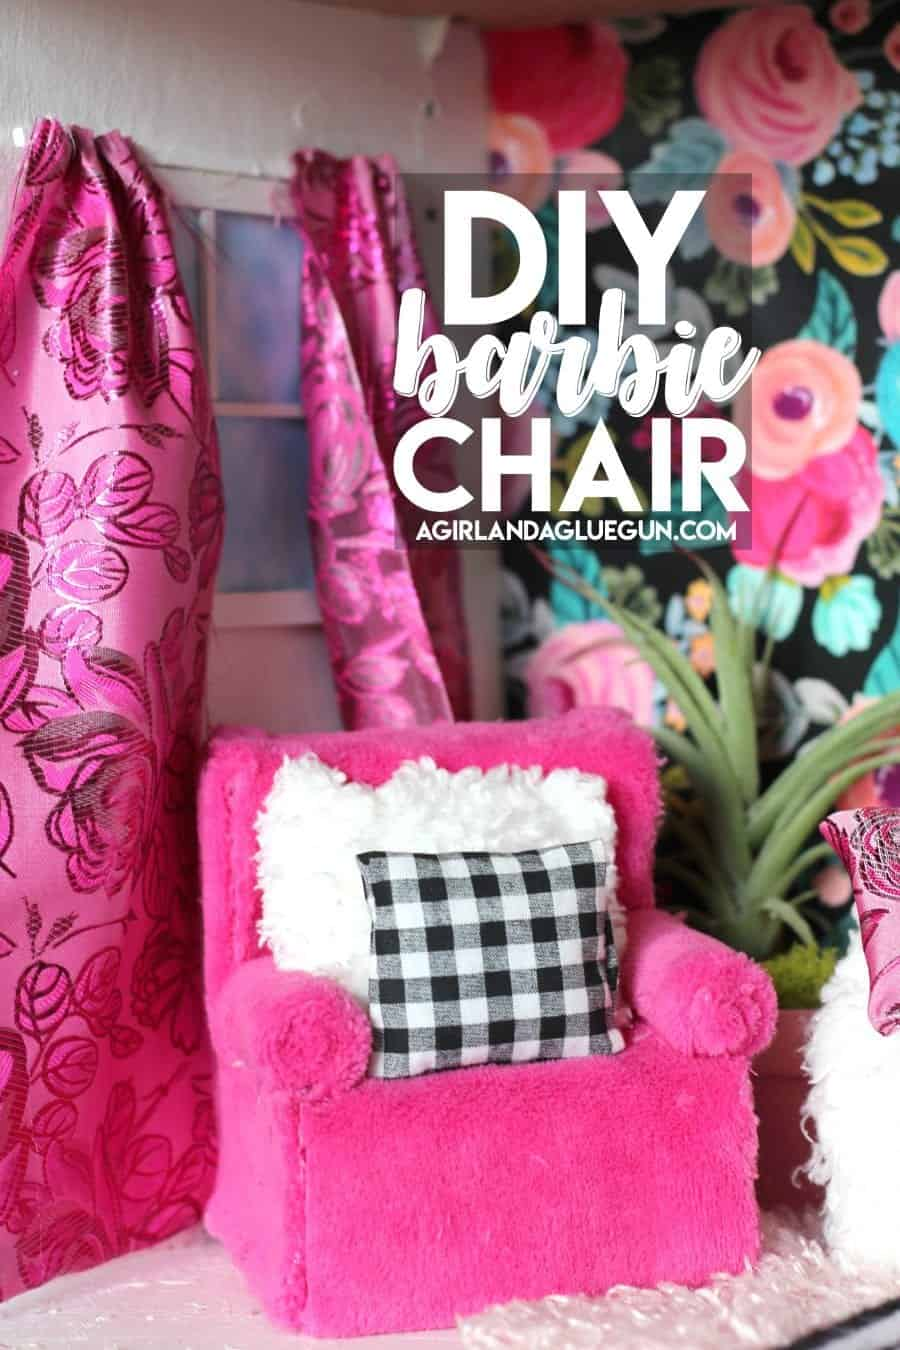 Barbie Couch And Chair Diy A Girl And A Glue Gun